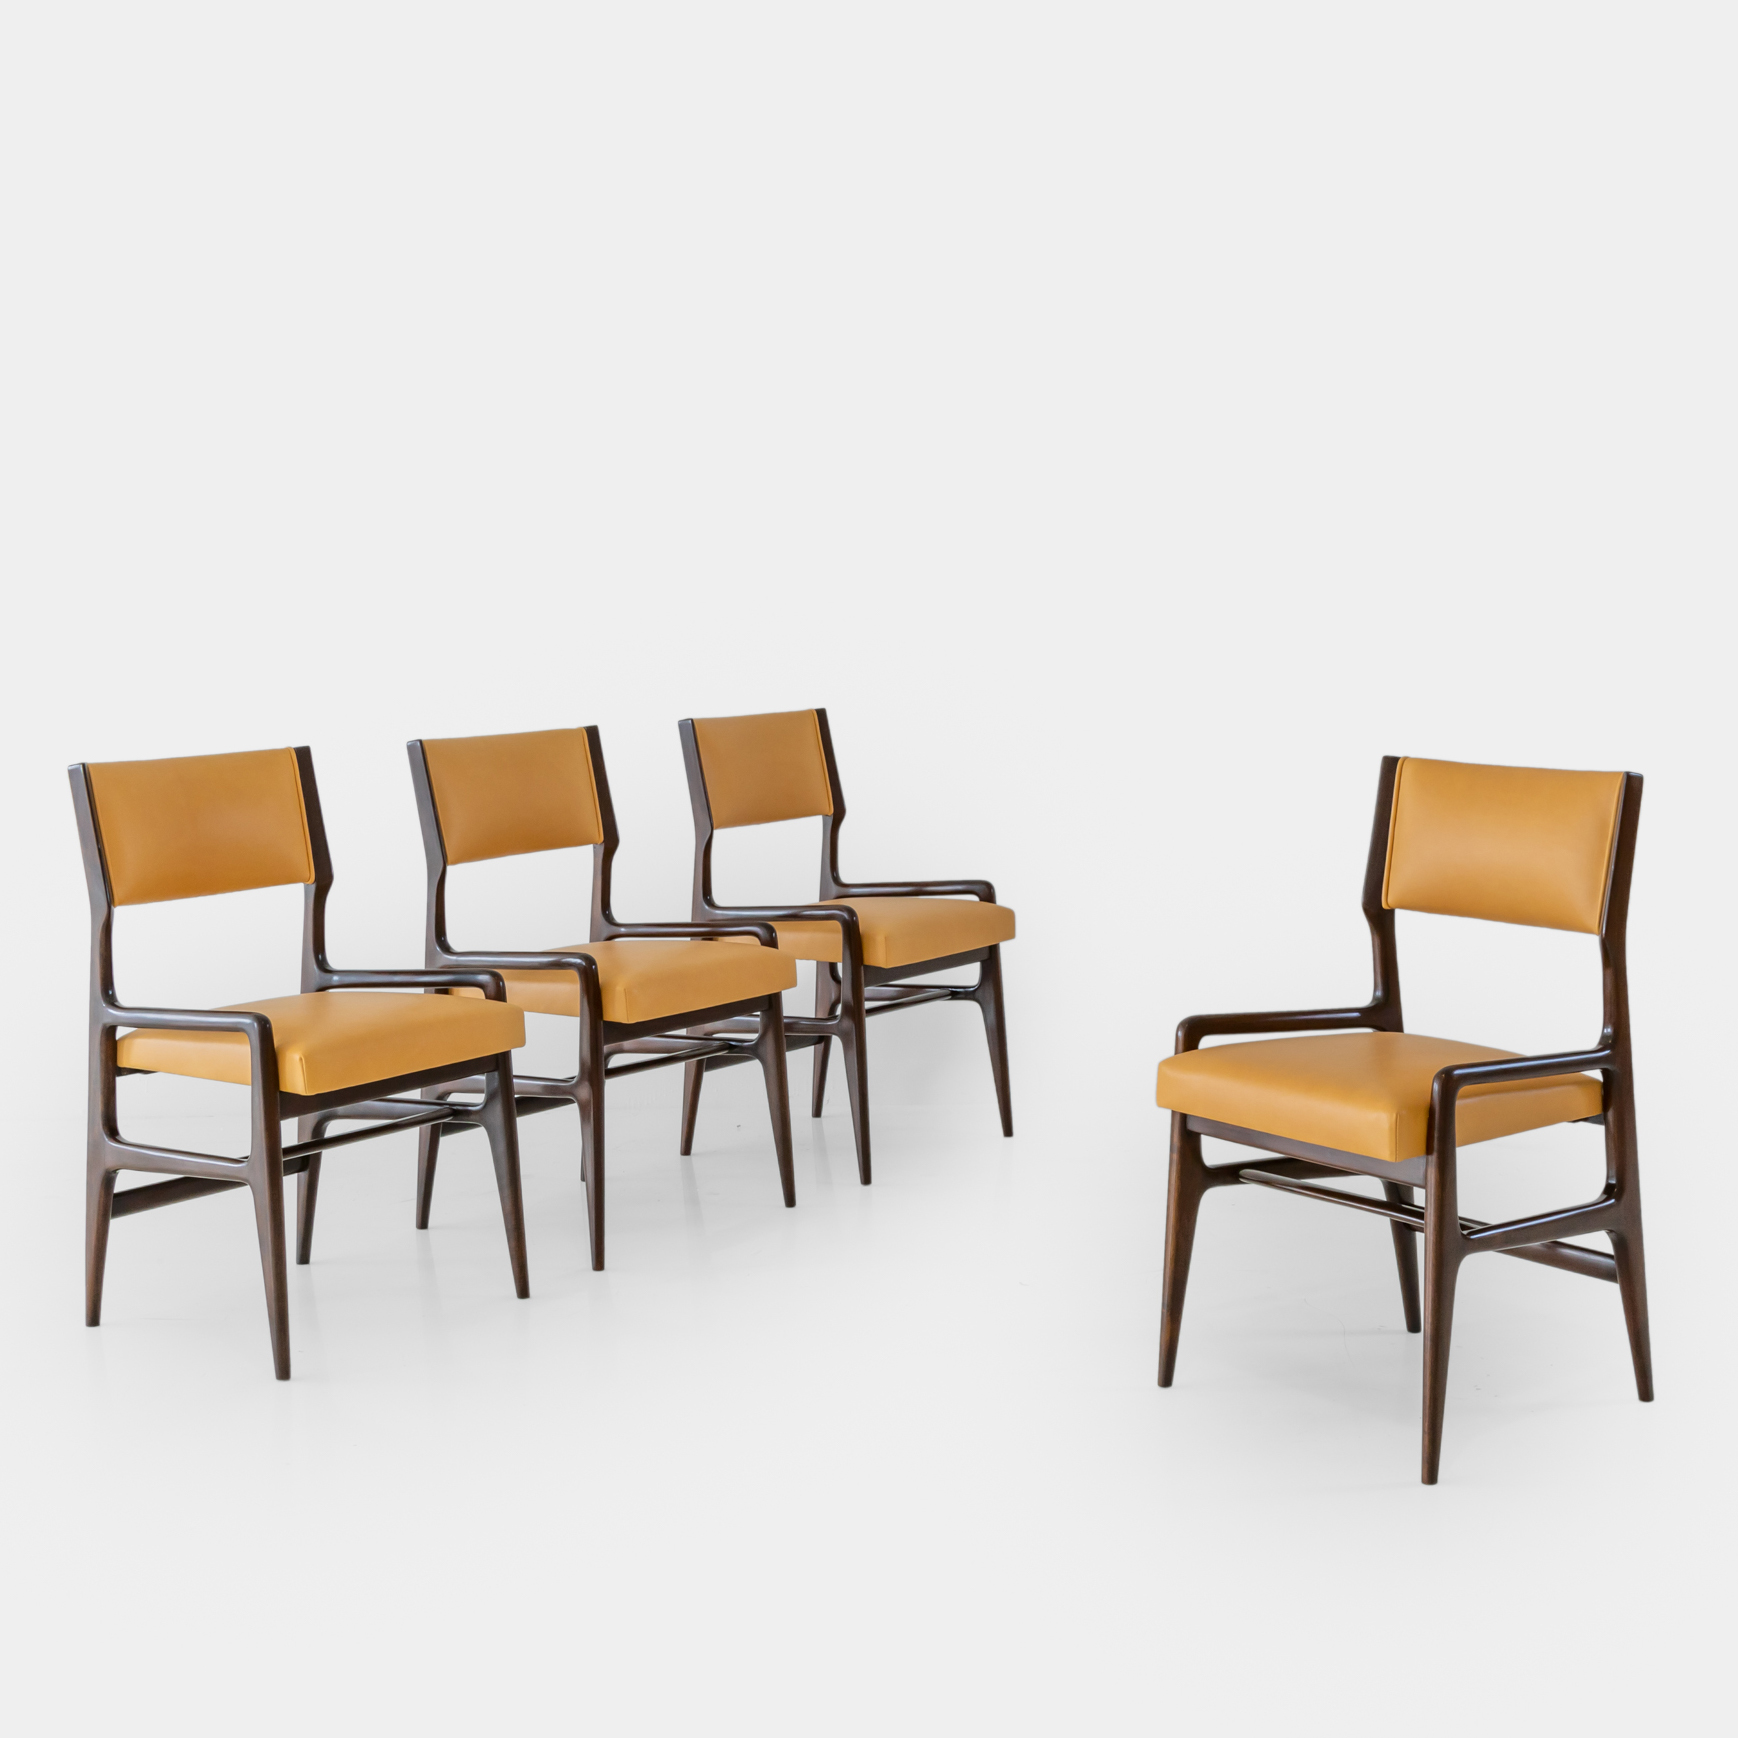 Set of Four Rare Dining Chairs by Gio Ponti for Cassina | soyun k.